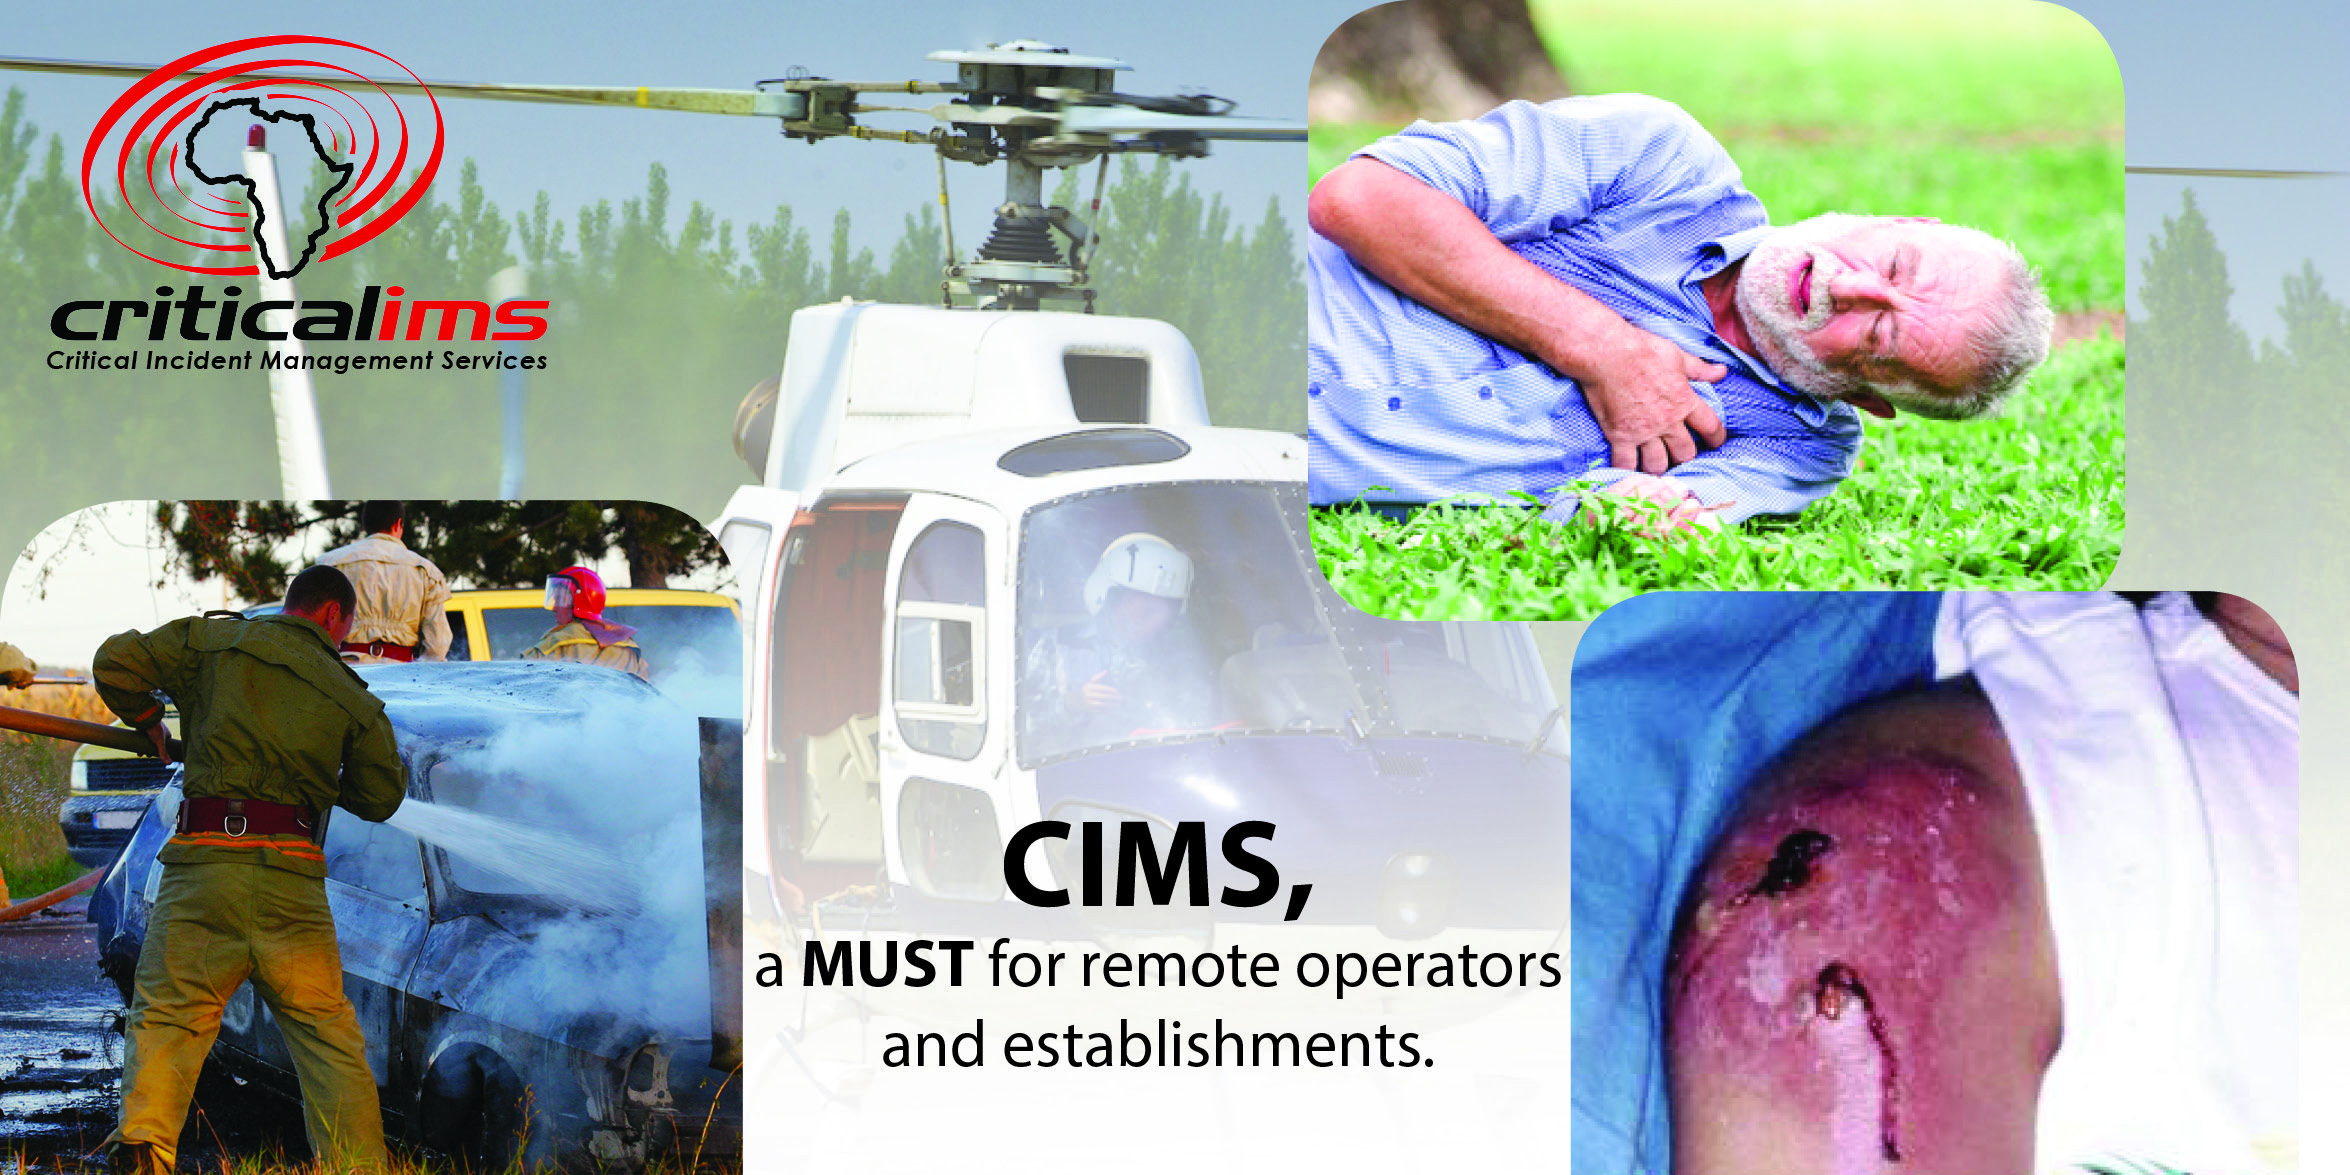 pic for CIMS article